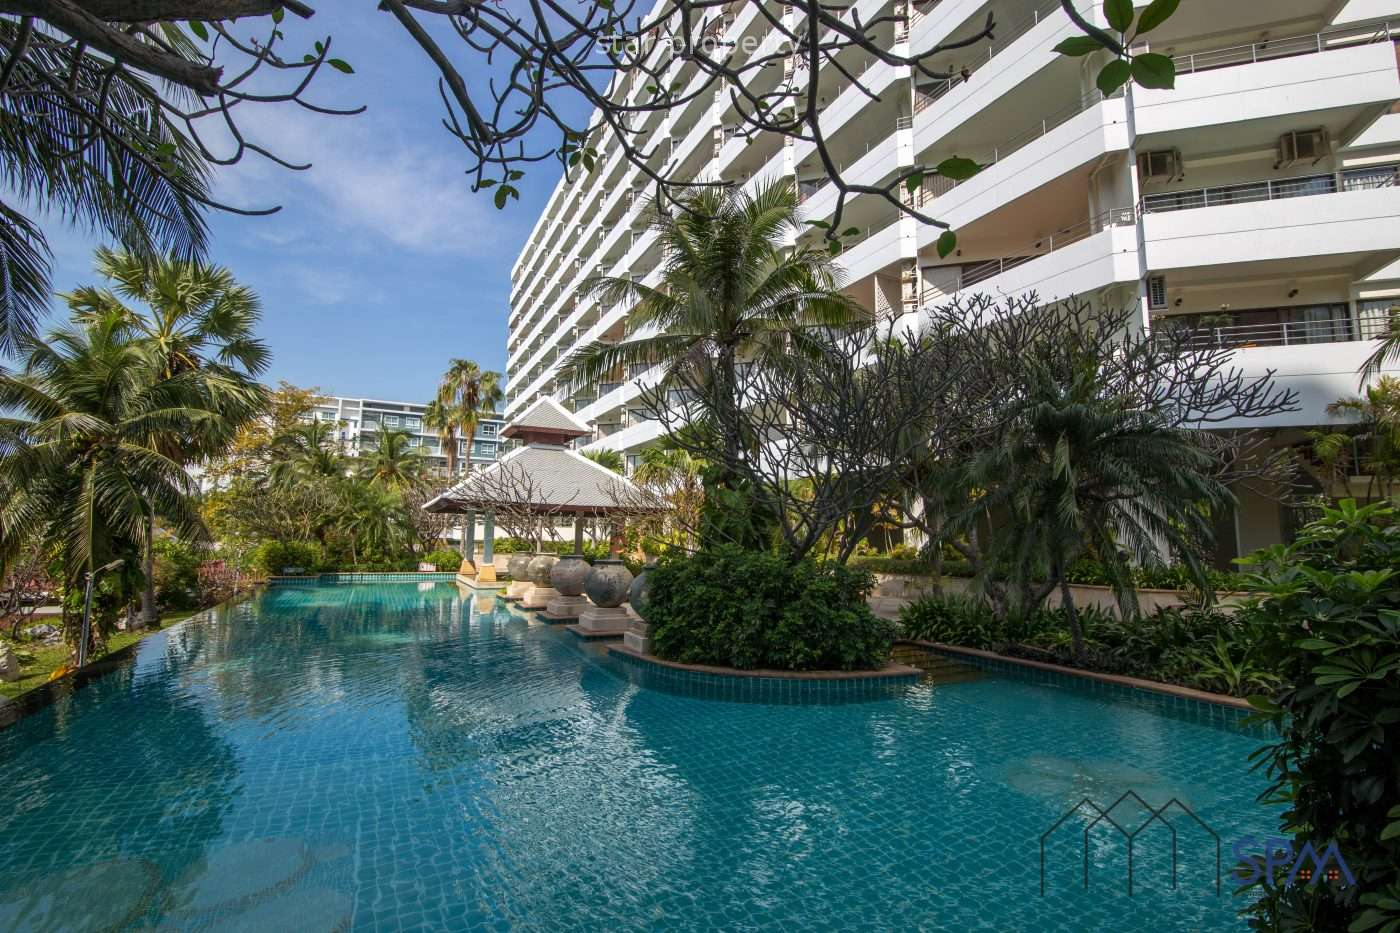 3 Bedrooms Unit for Sale at Palm Pavilion Lake View Hua Hin Soi 5